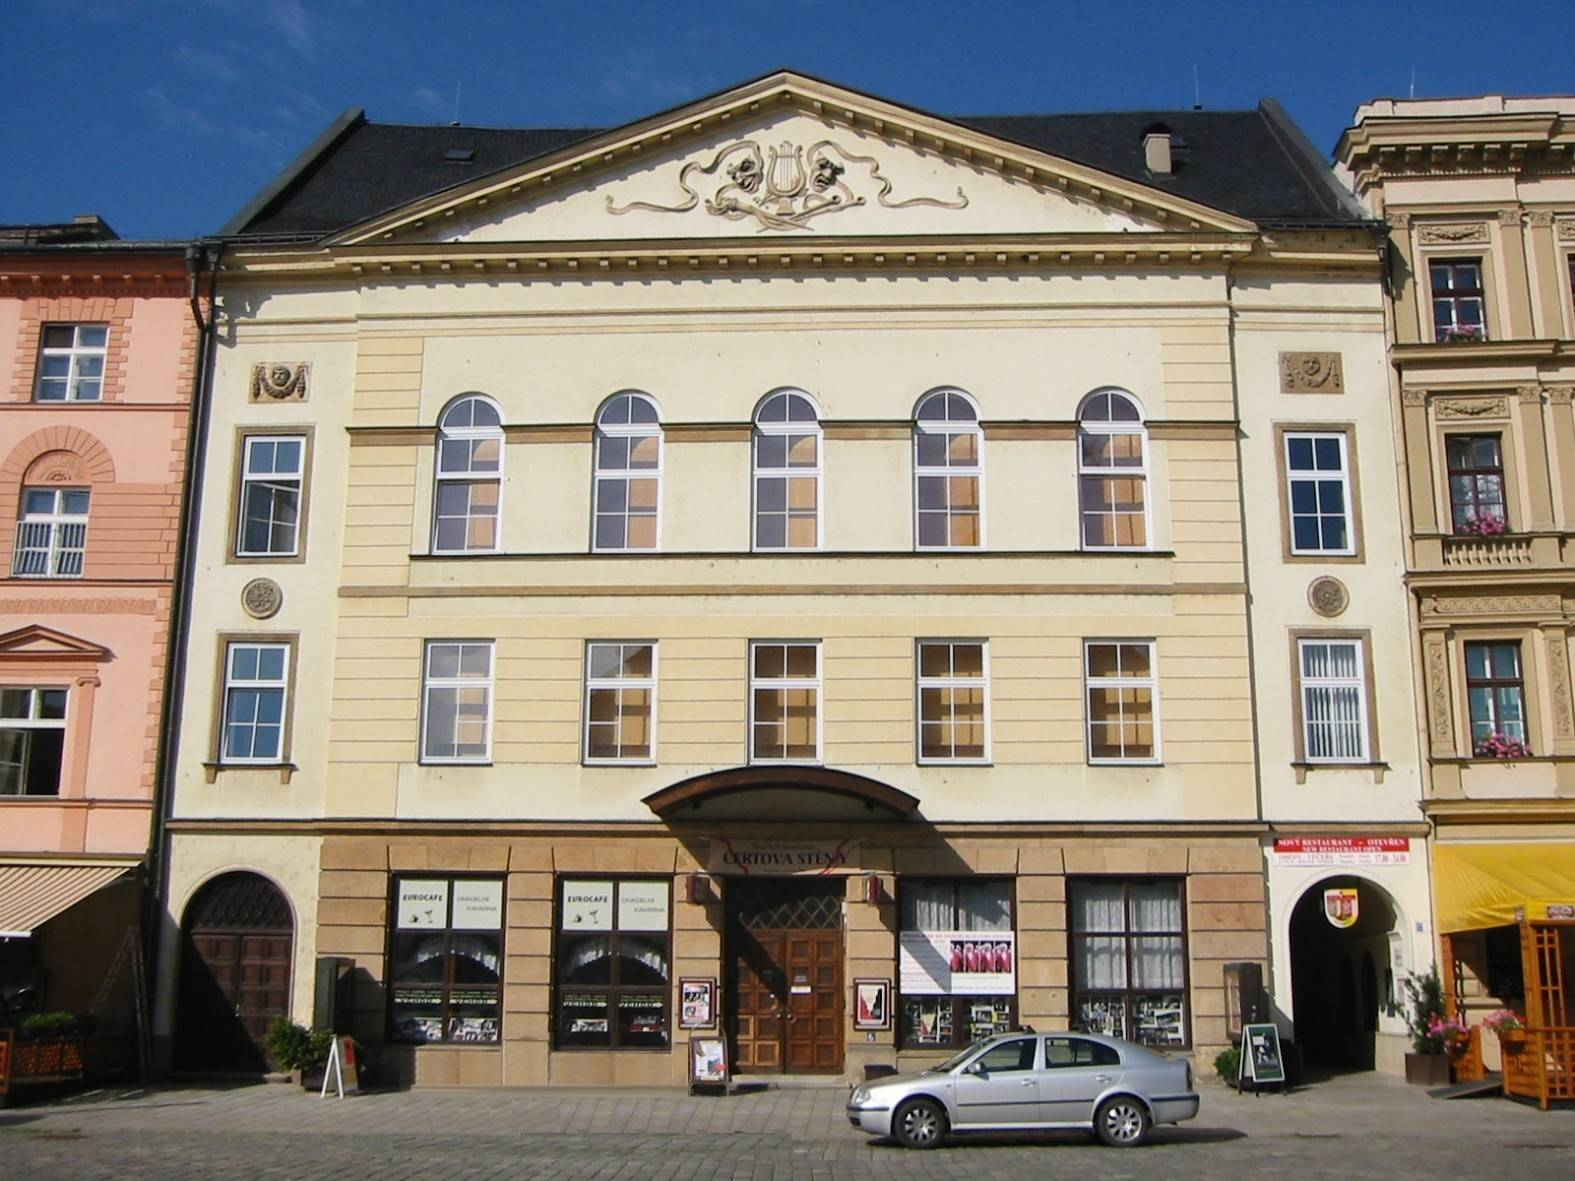 Mährisches Theater Olomouc